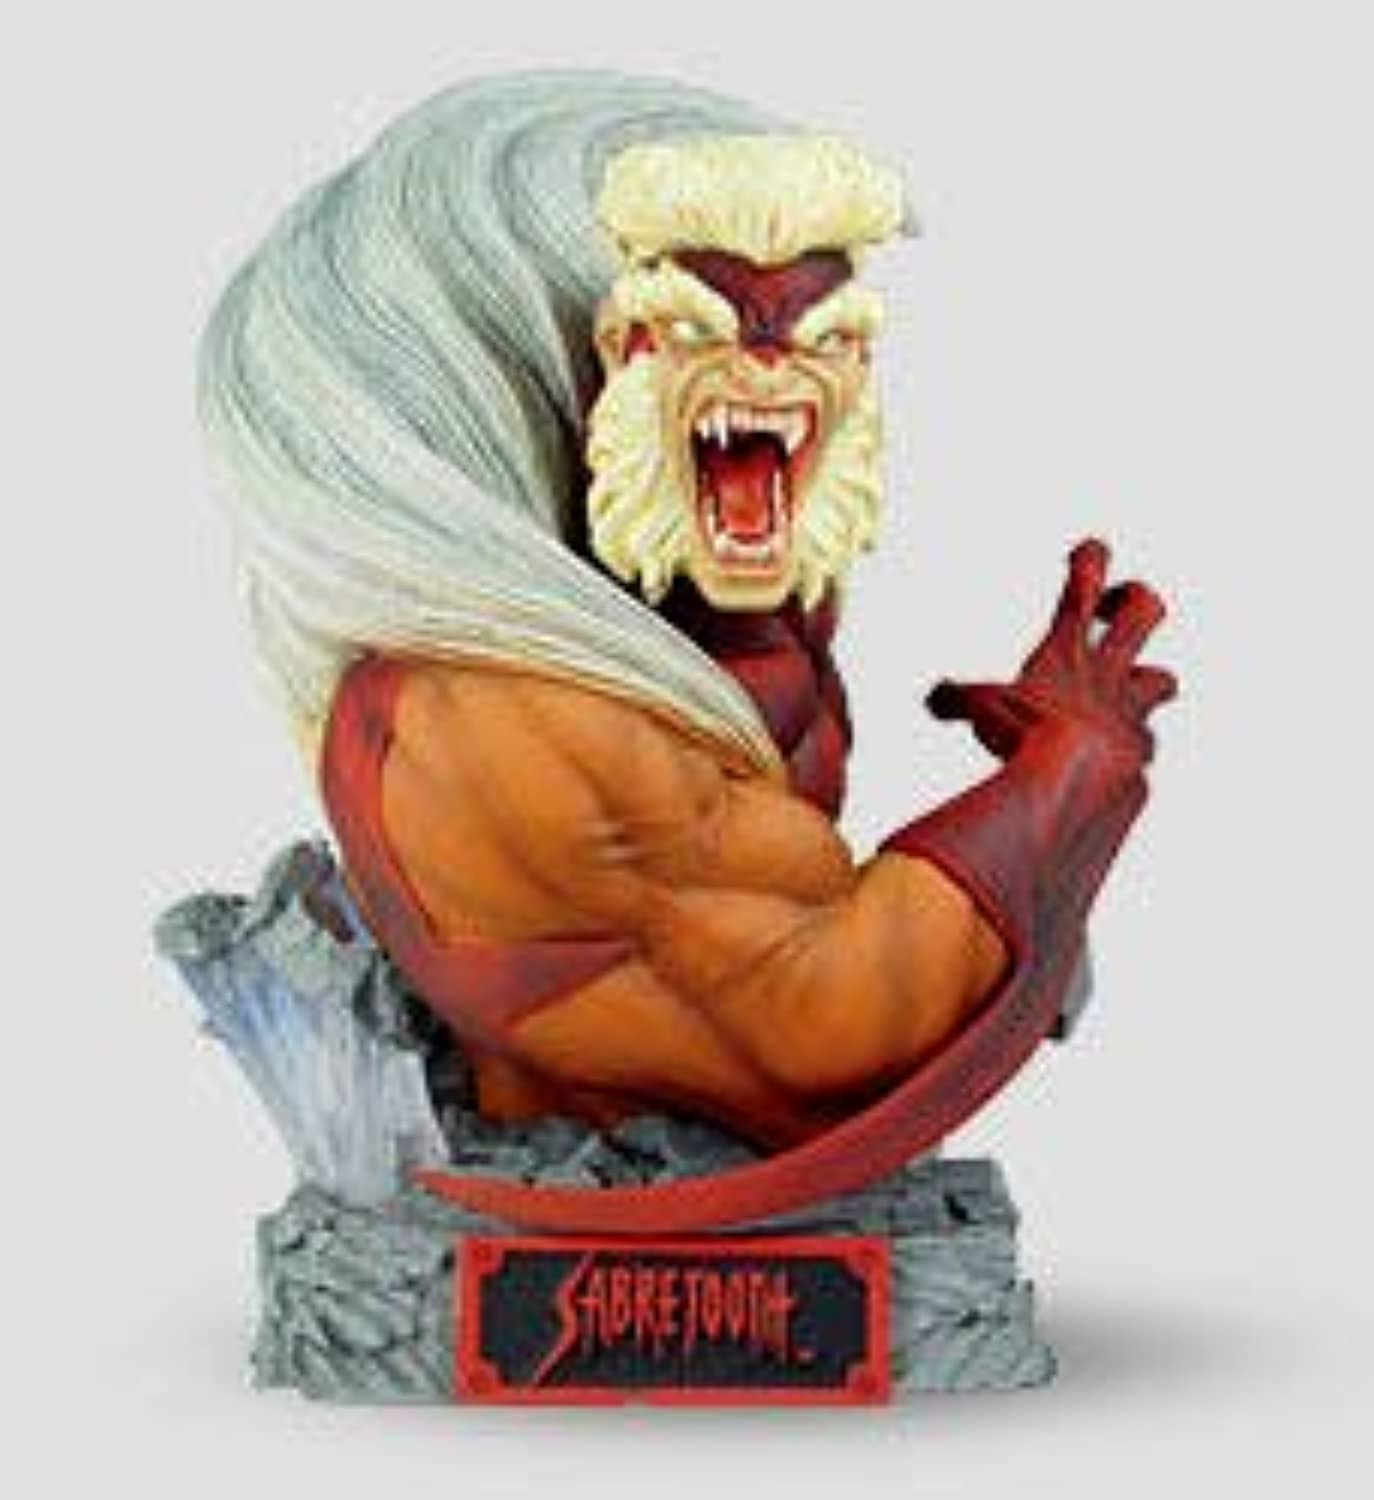 Sabretooth Rogue's Gallery Bust